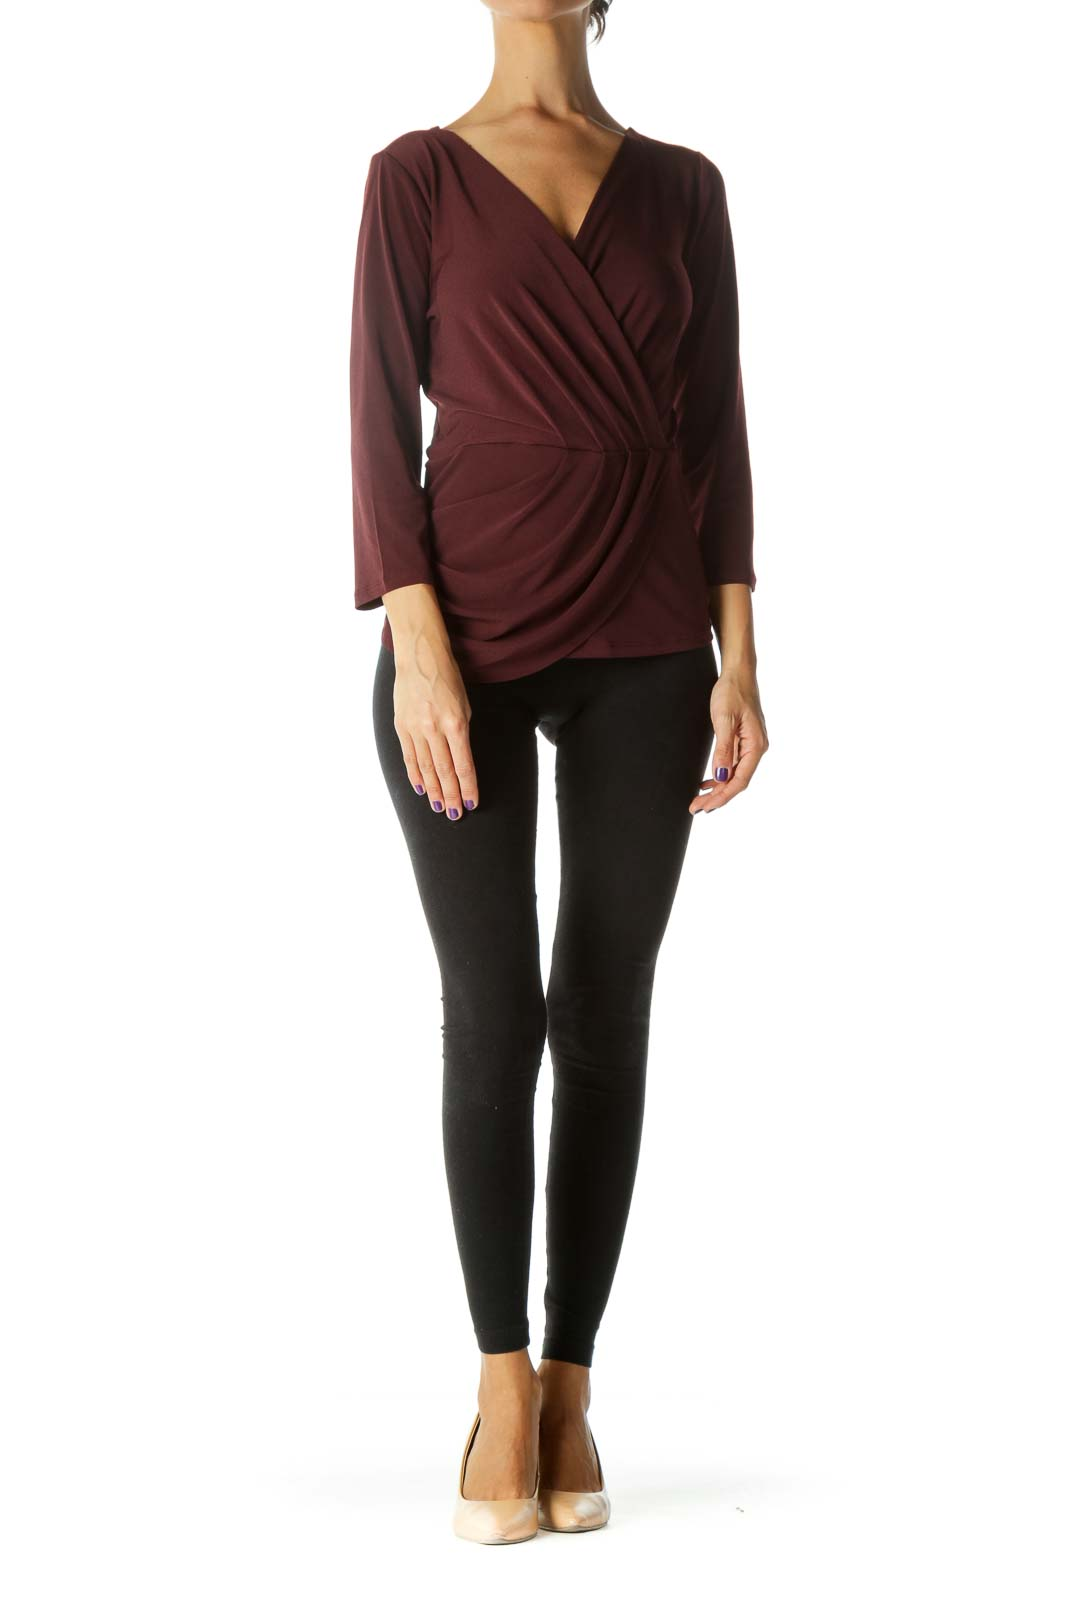 Burgundy Deep Neck Tunic